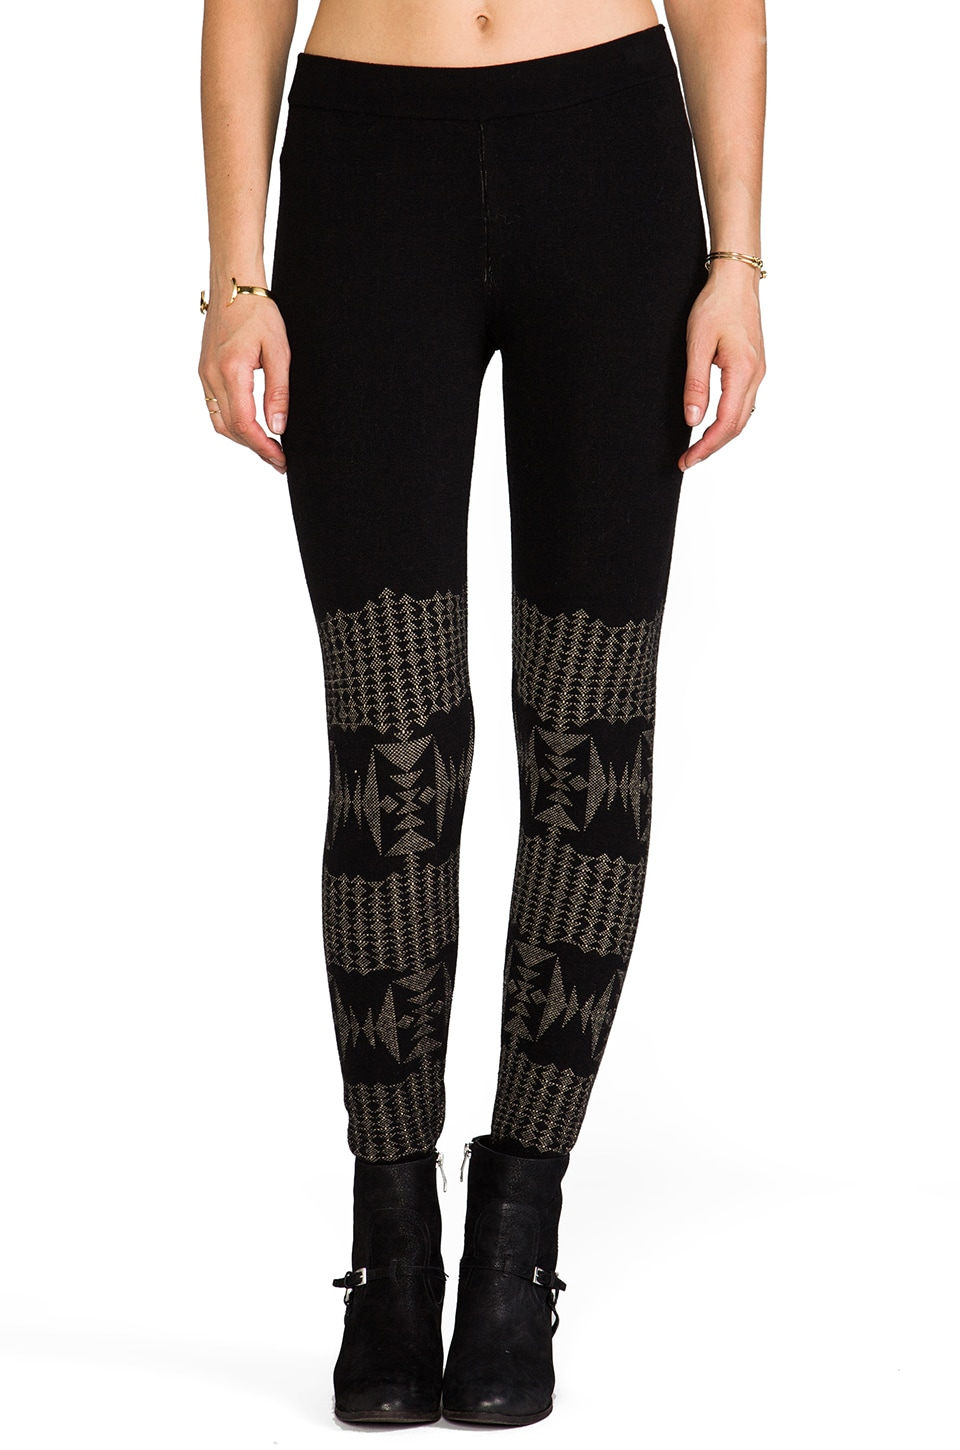 The Portland Collection by Pendleton Chiloquin Legging in Black/Tan